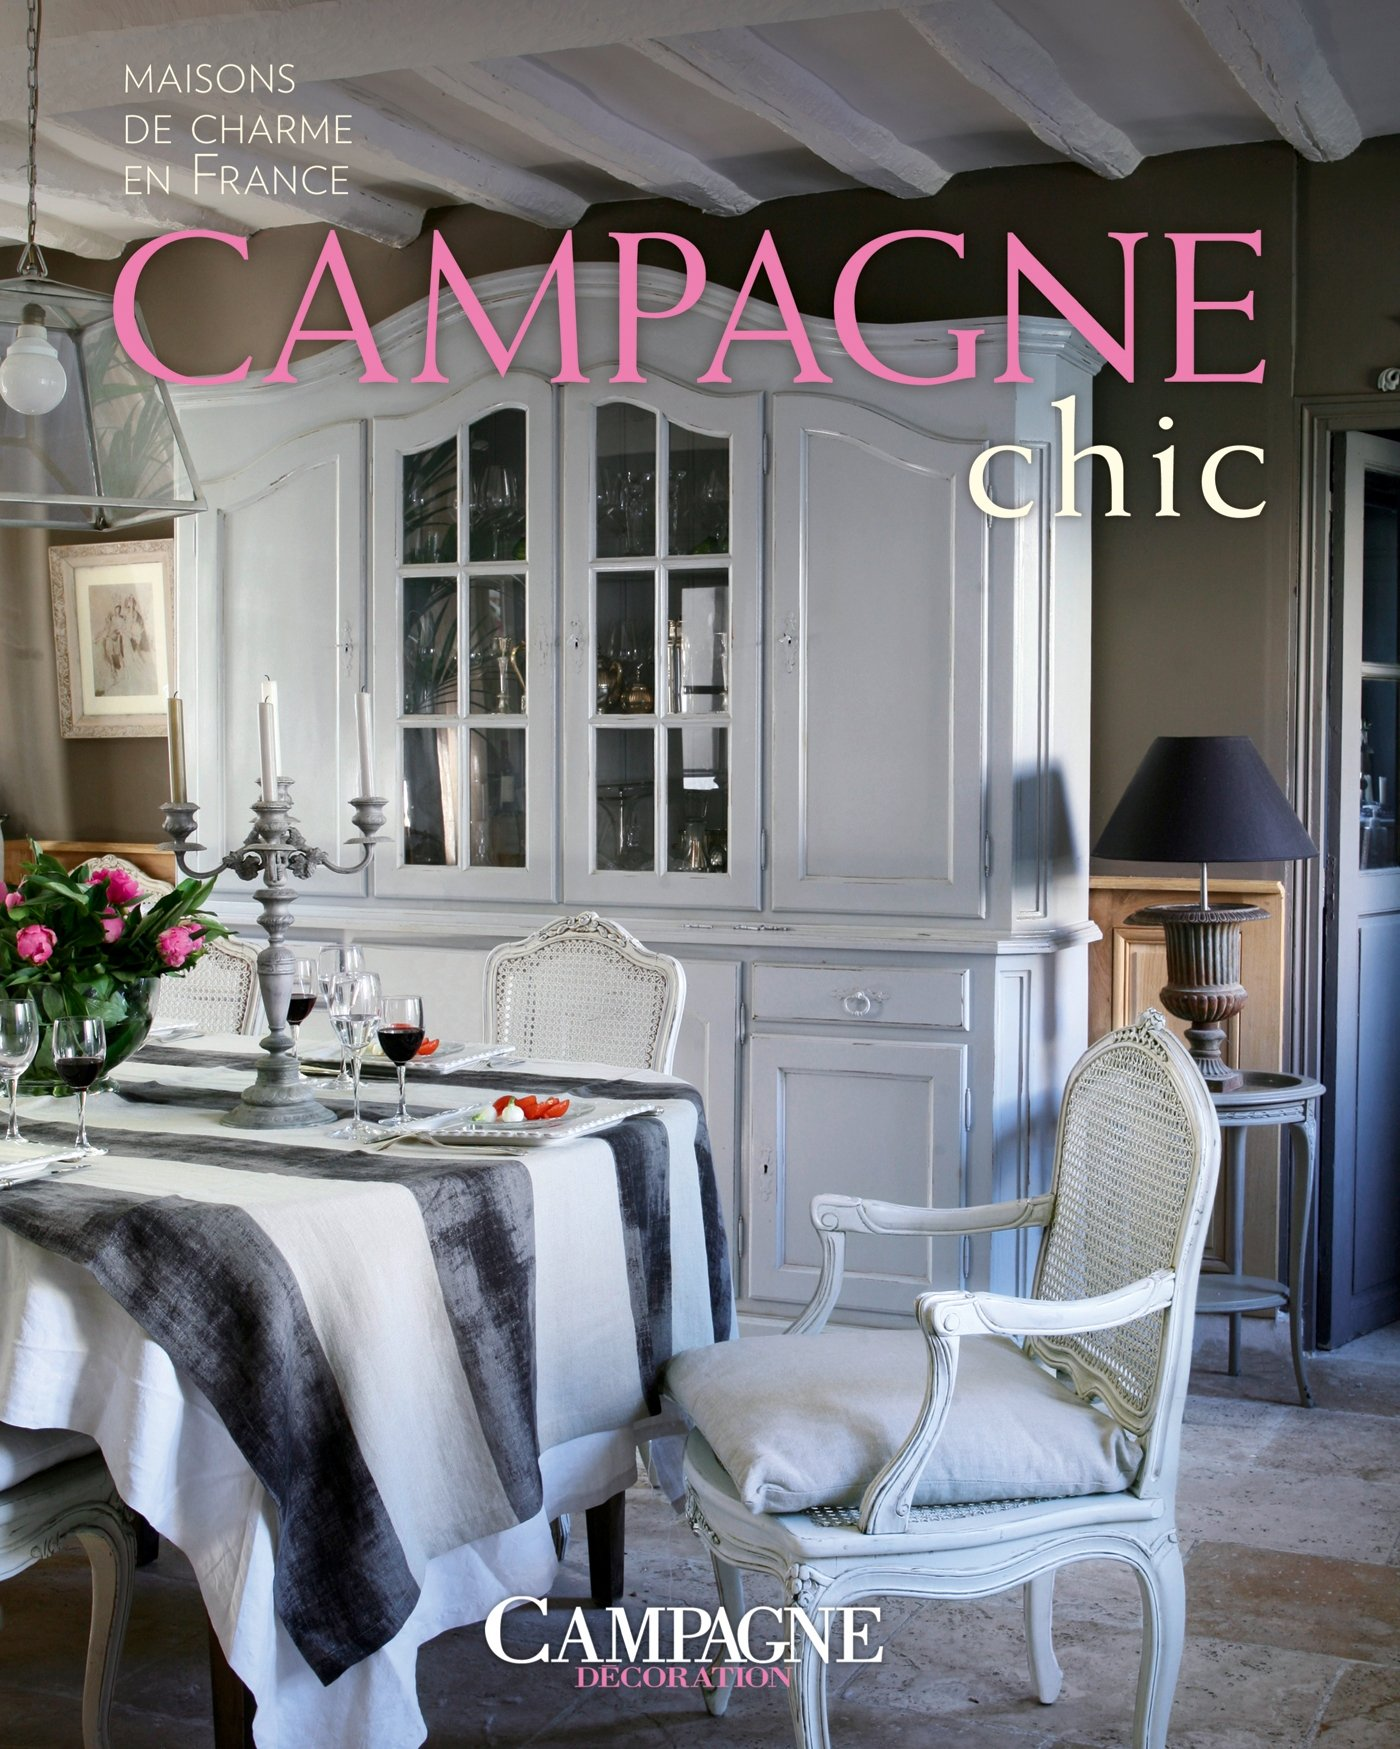 Campagne chic : Maisons de charme en France: Amazon.co.uk: Campagne ...